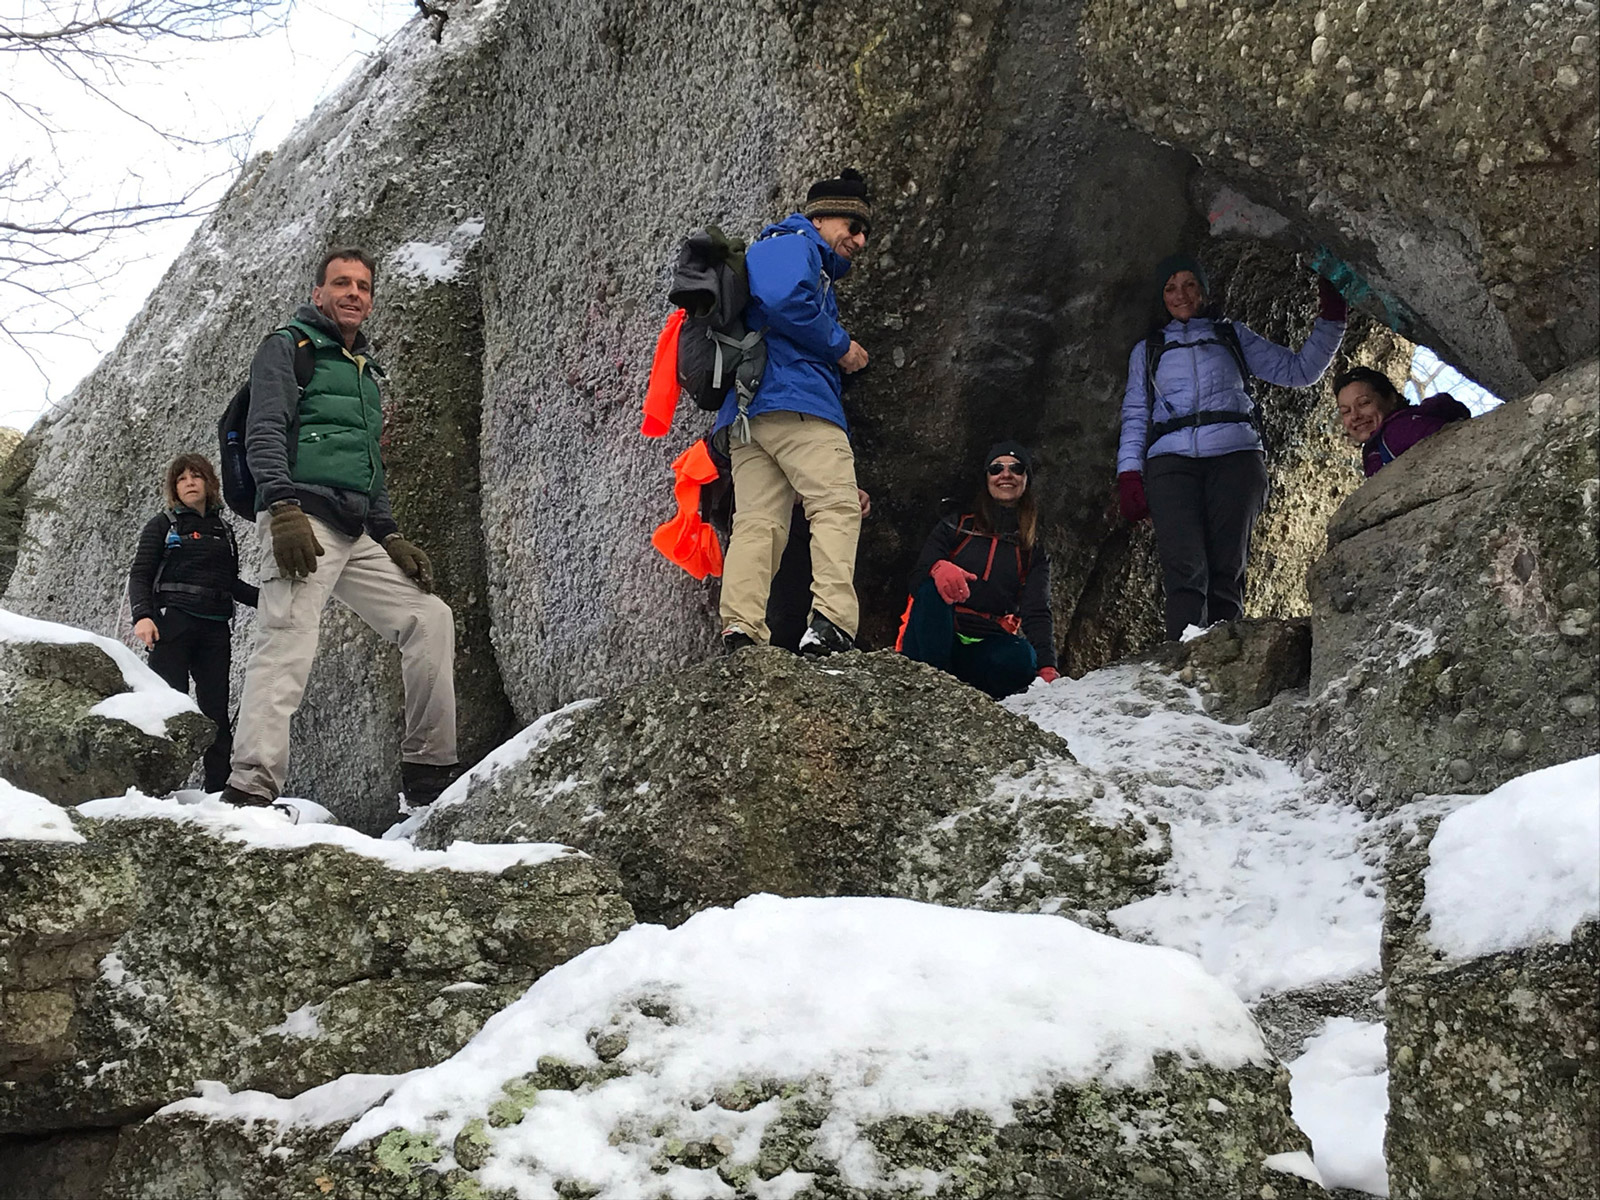 a group of hikers on boxcar rocks